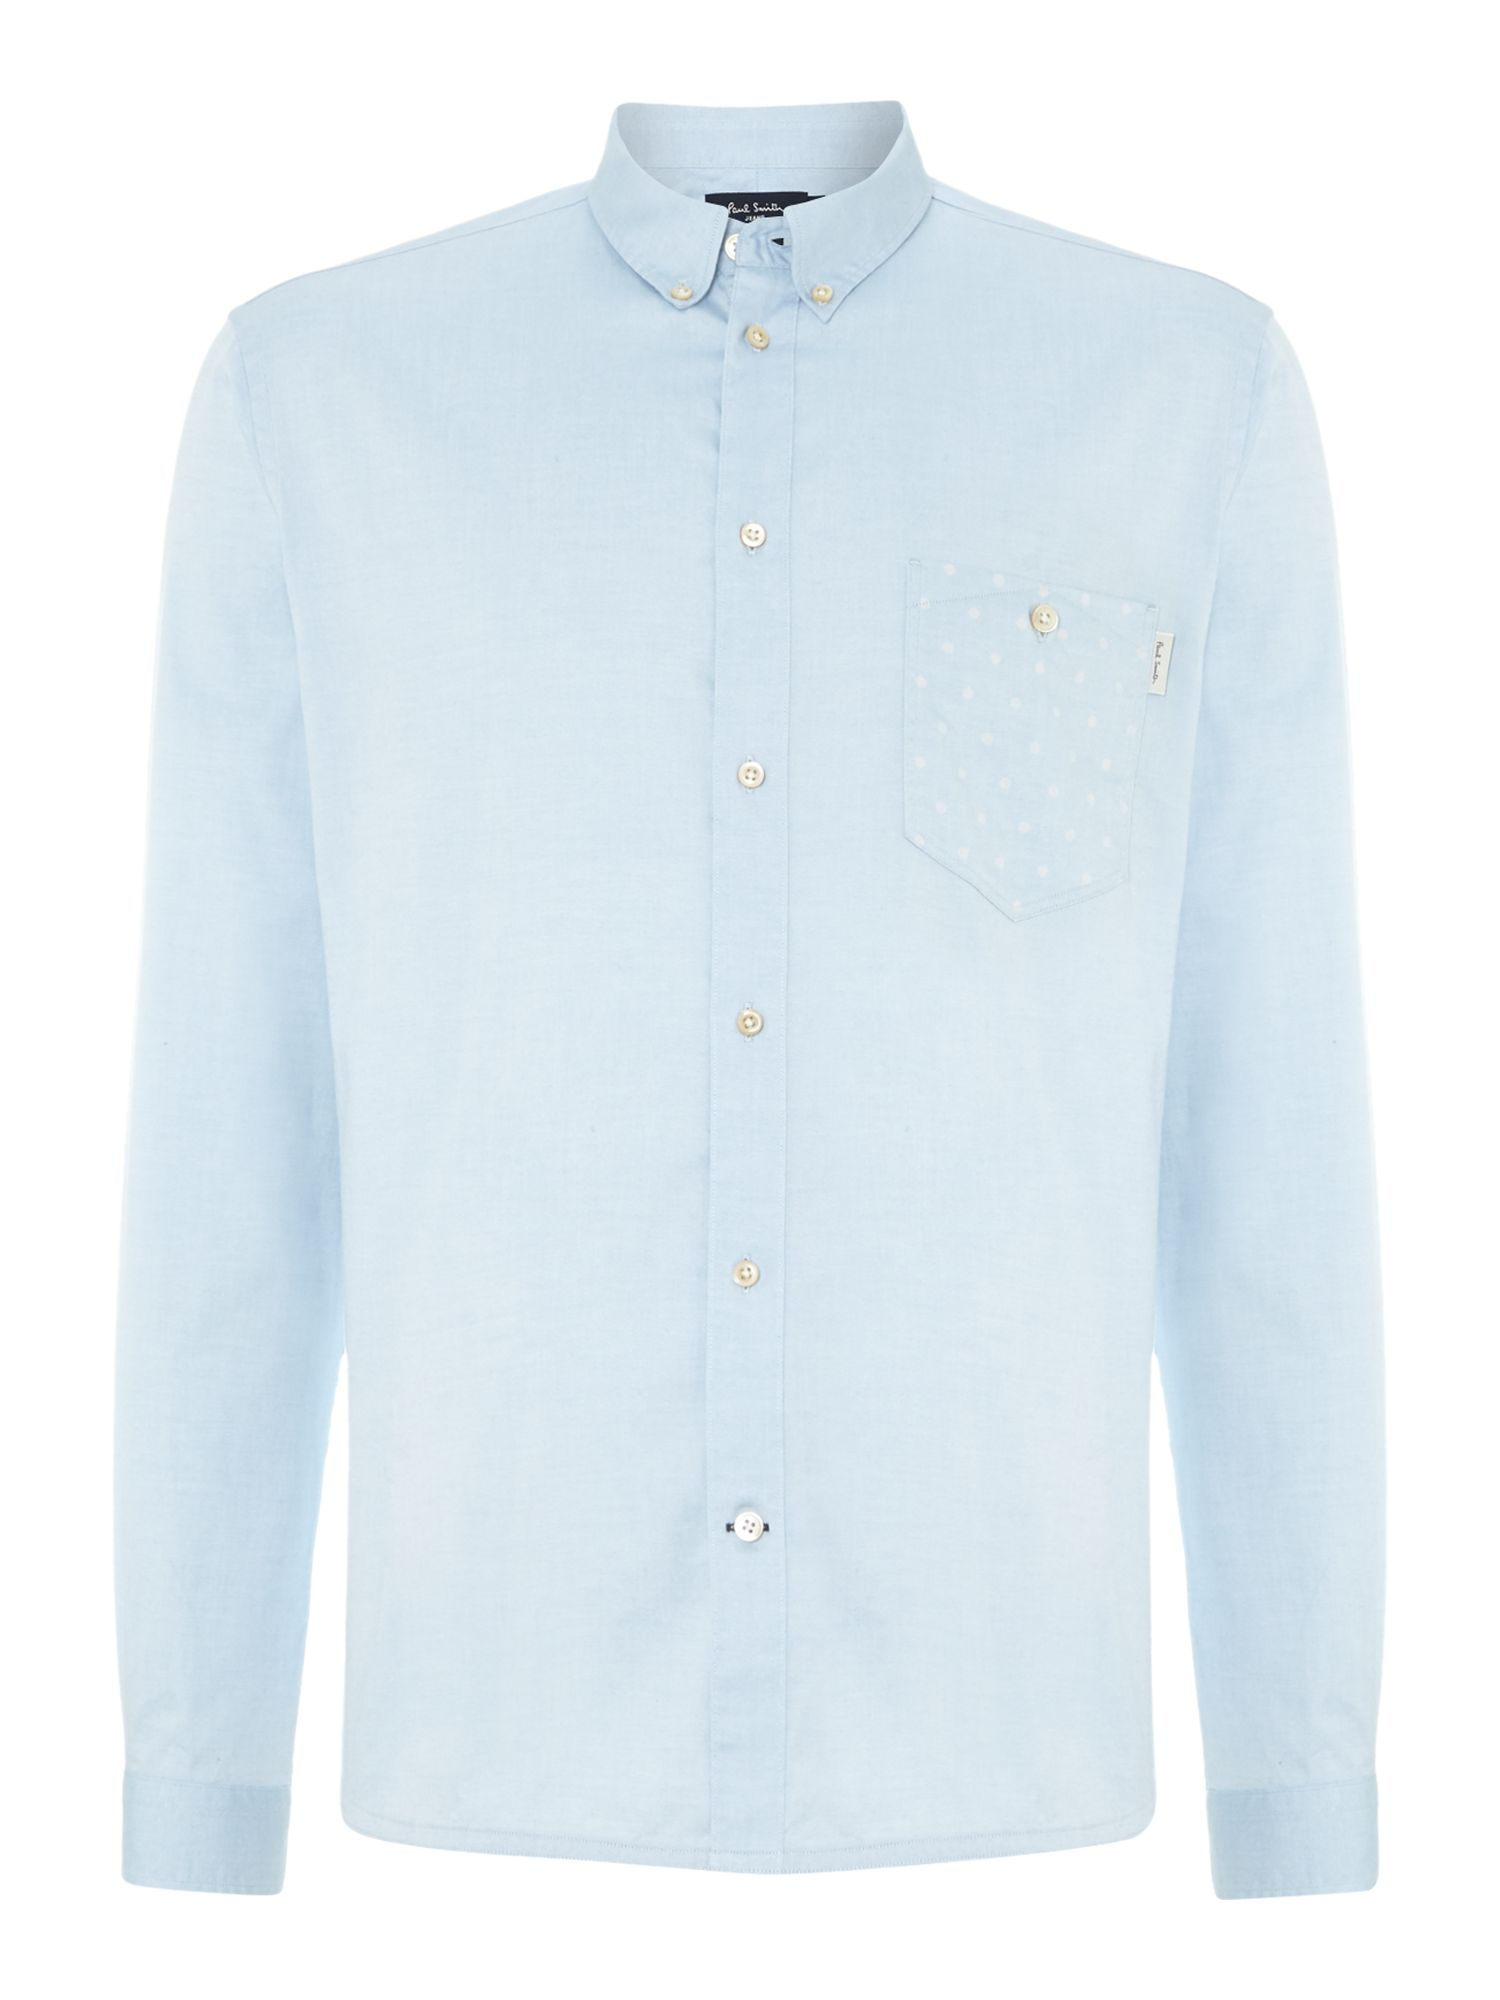 Oxford sky shirt